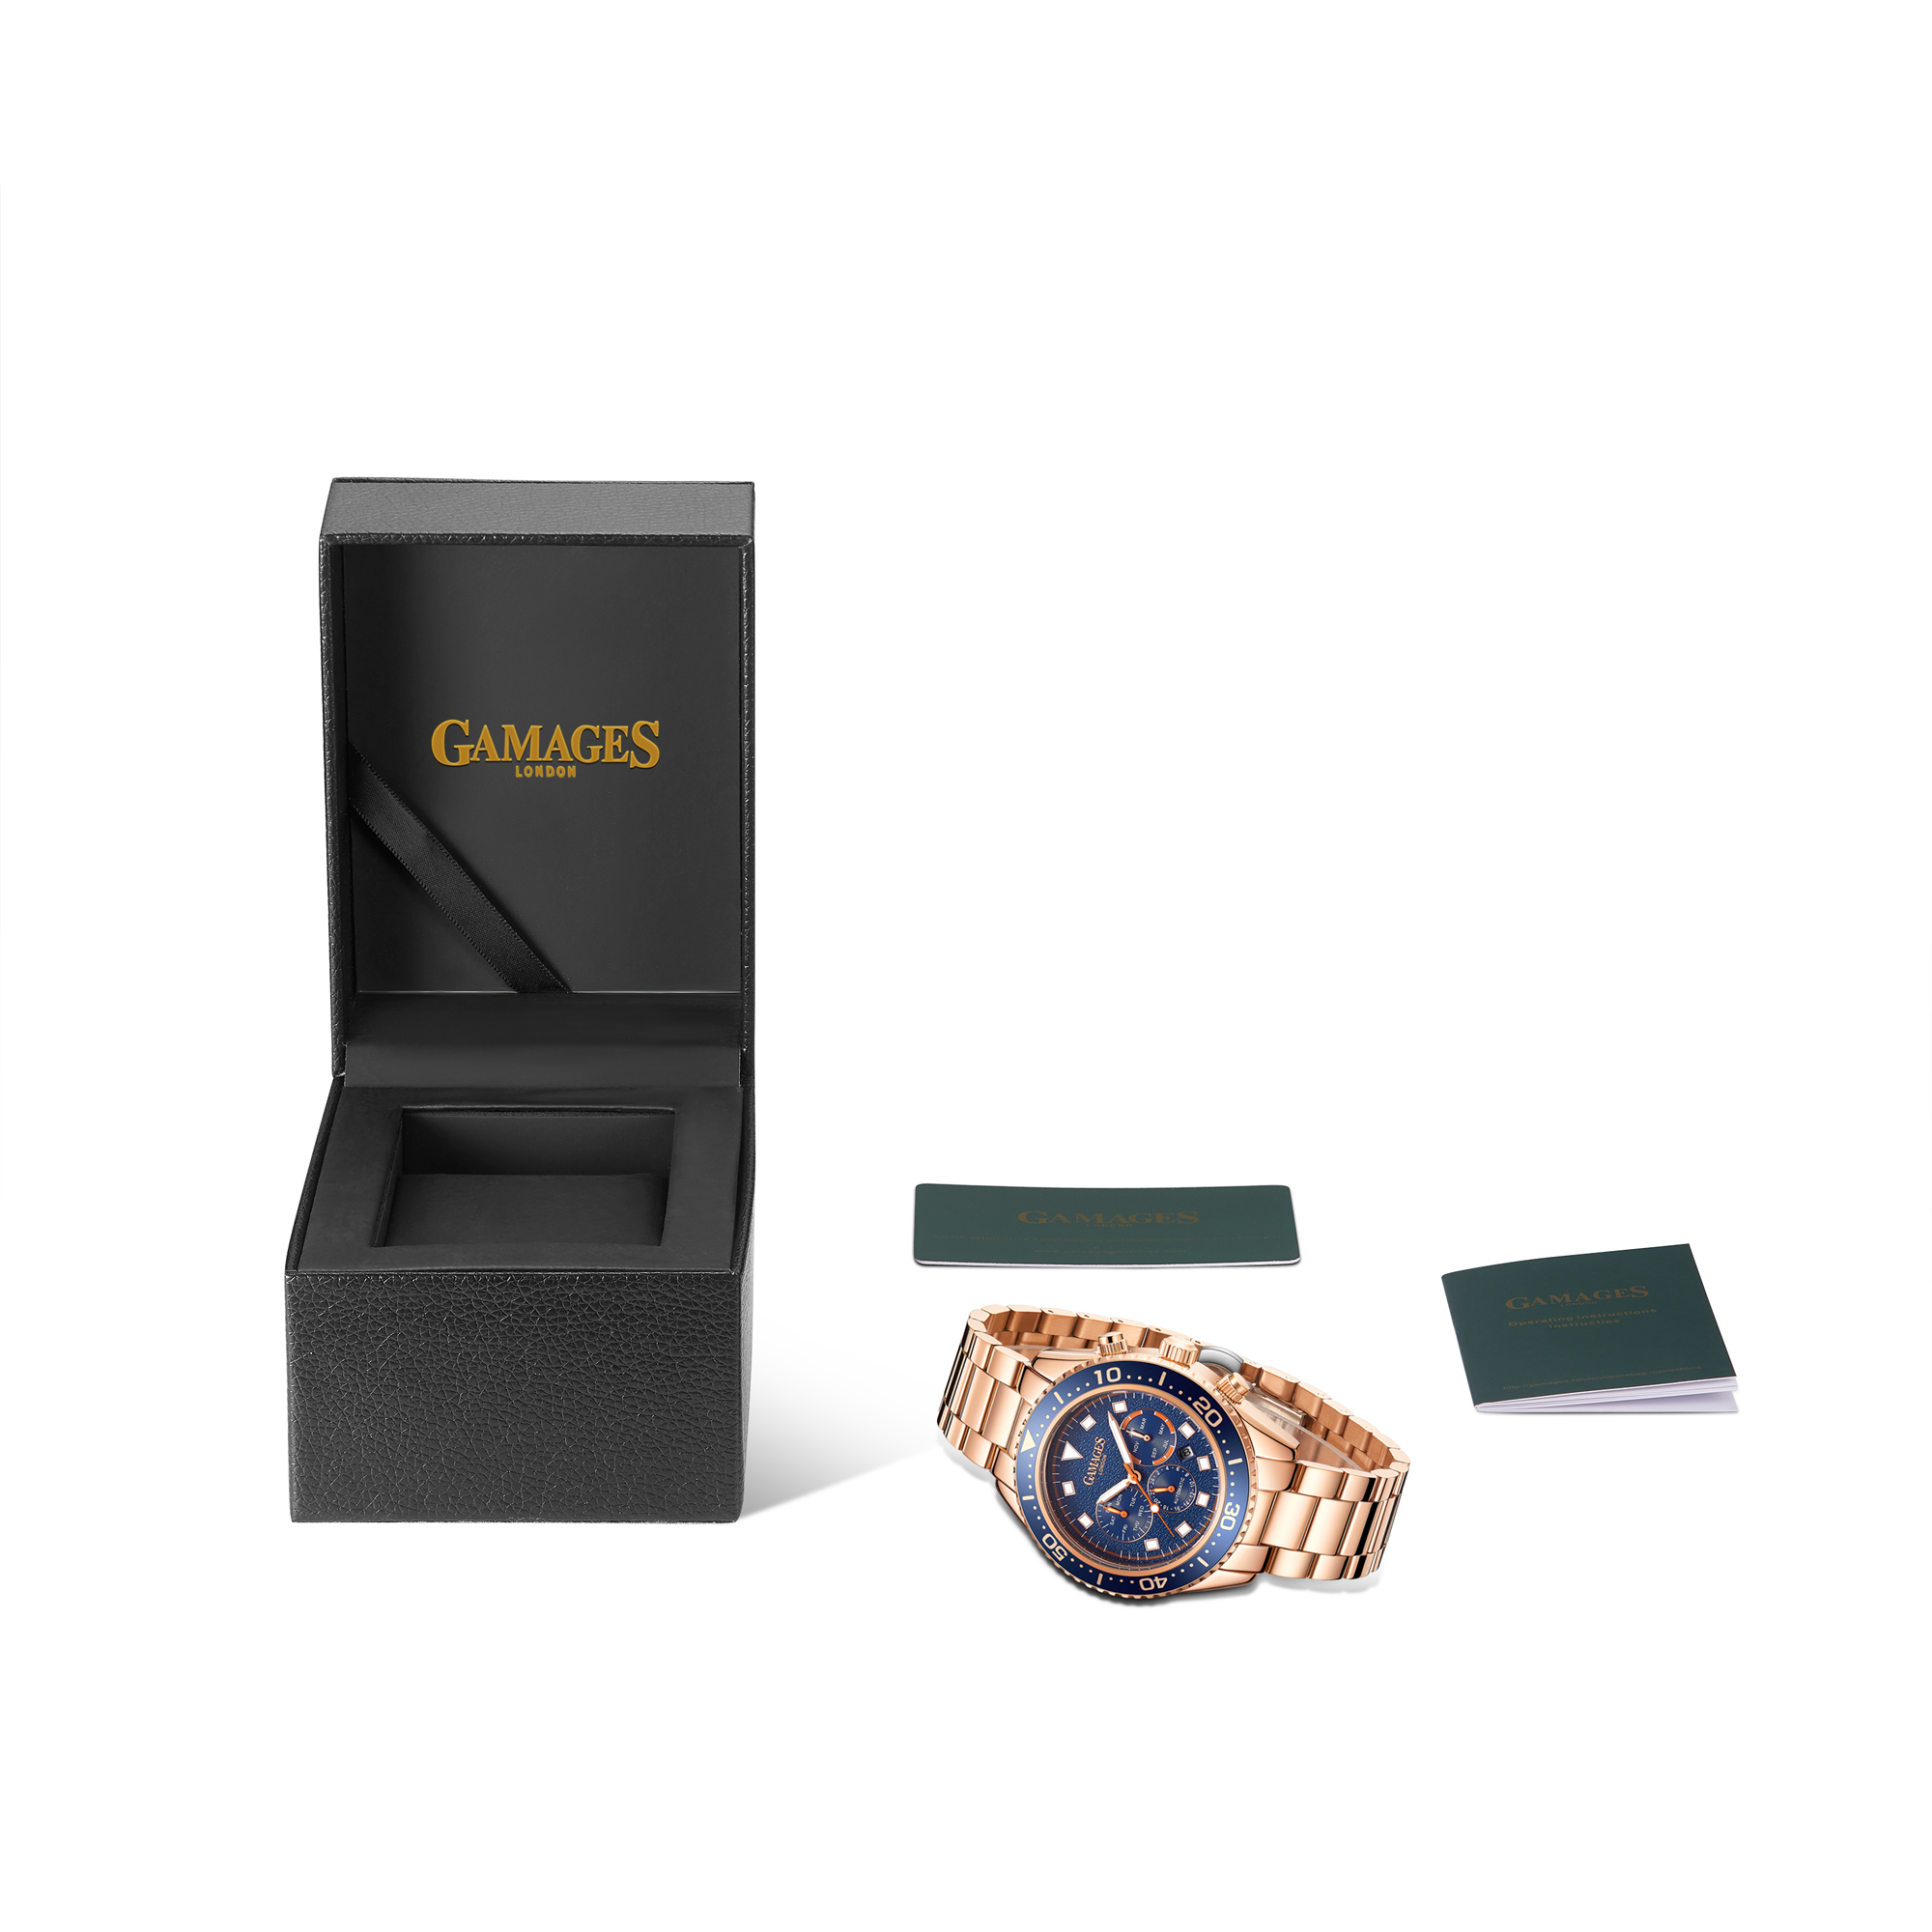 Limited Edition Hand Assembled Gamages Allure Automatic Rose – 5 Year Warranty & Free Delivery - Image 2 of 5